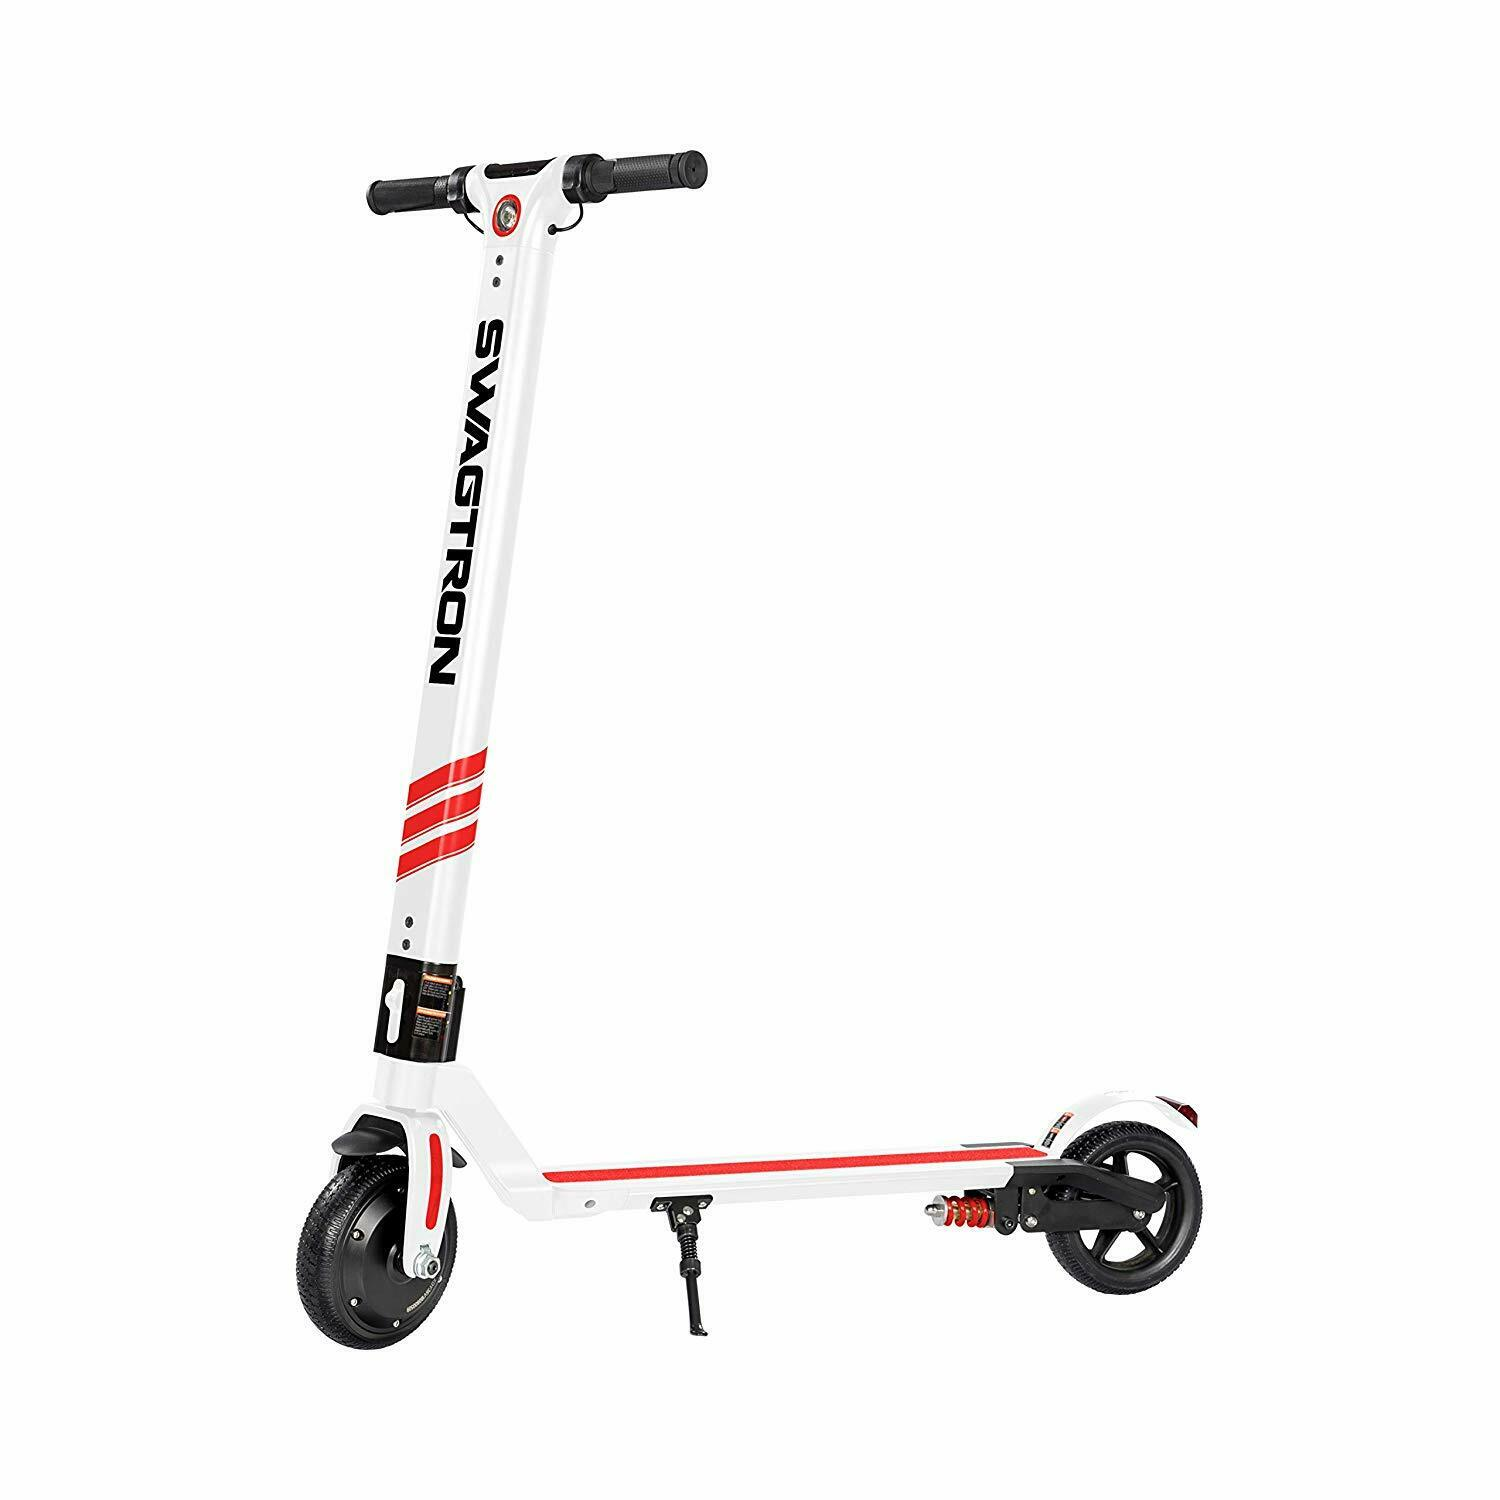 Swagtron Swagger 3 Pro Foldable Electric Scooter